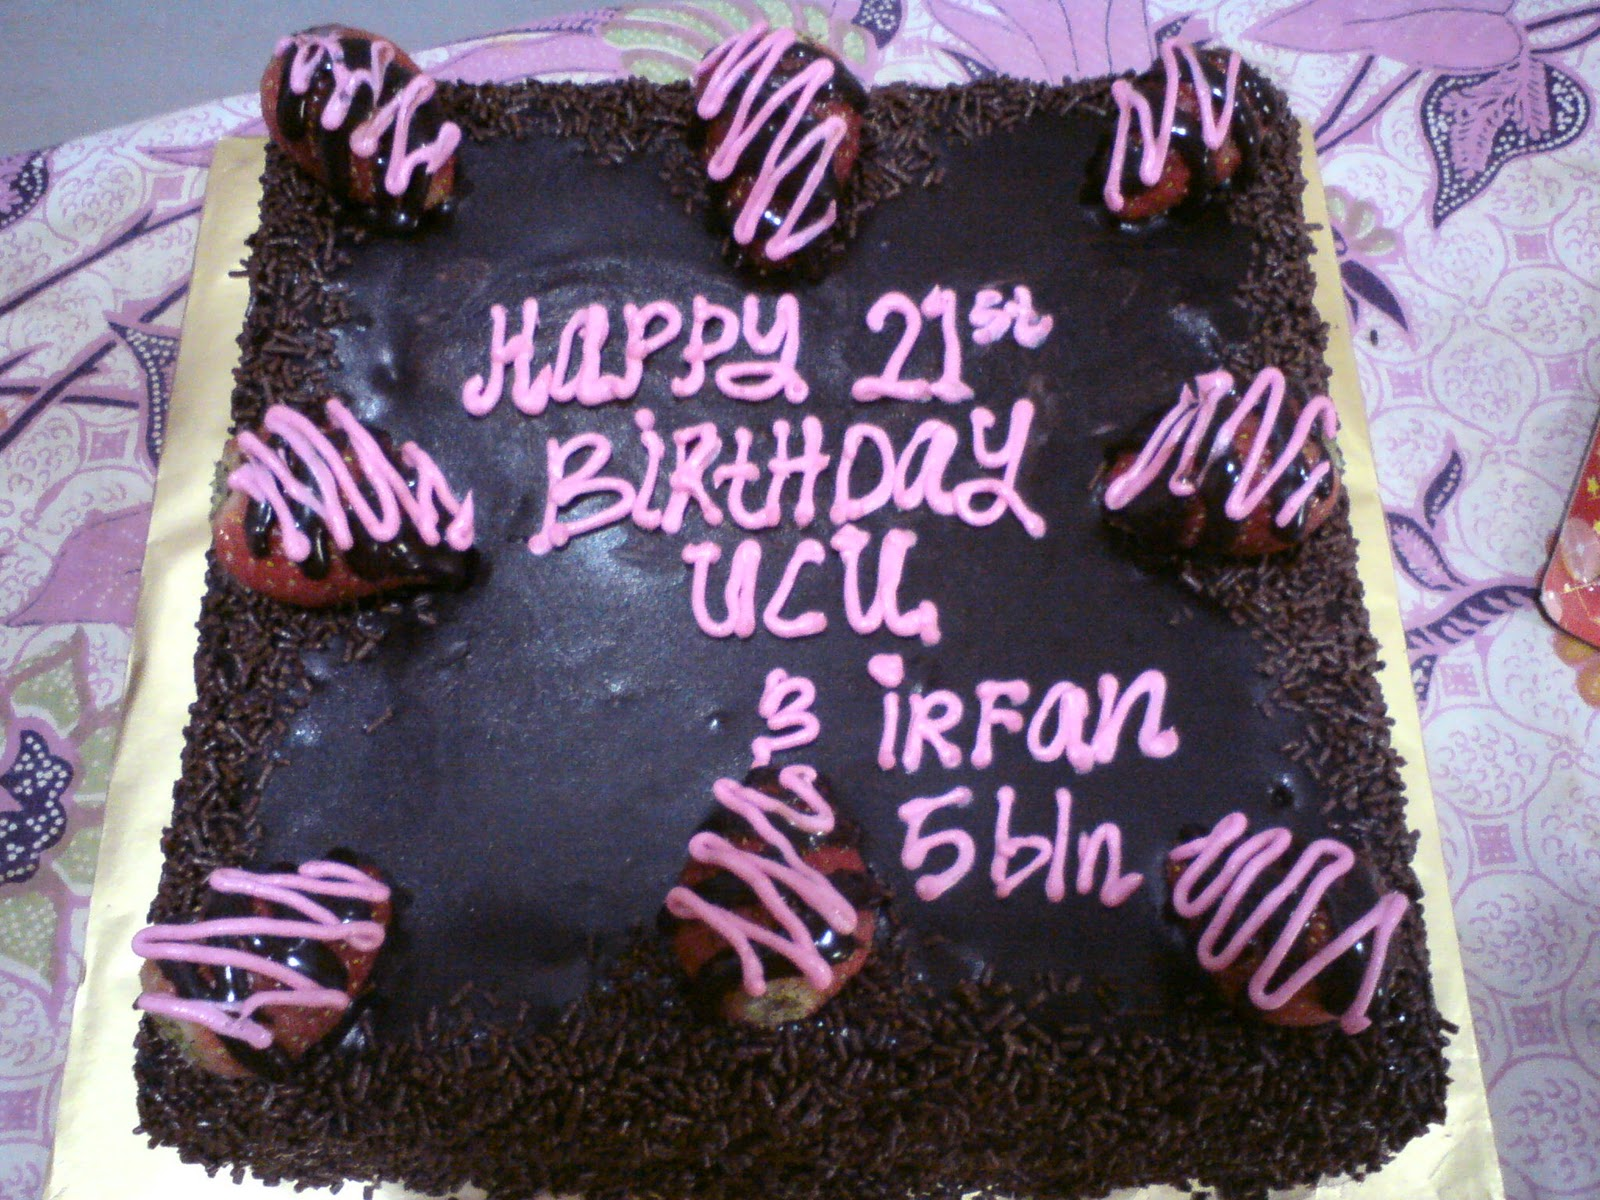 Cake Images With Name Irfan : Chocolate Cakes & Beadings: Birthday Cake for Eaa & Irfan